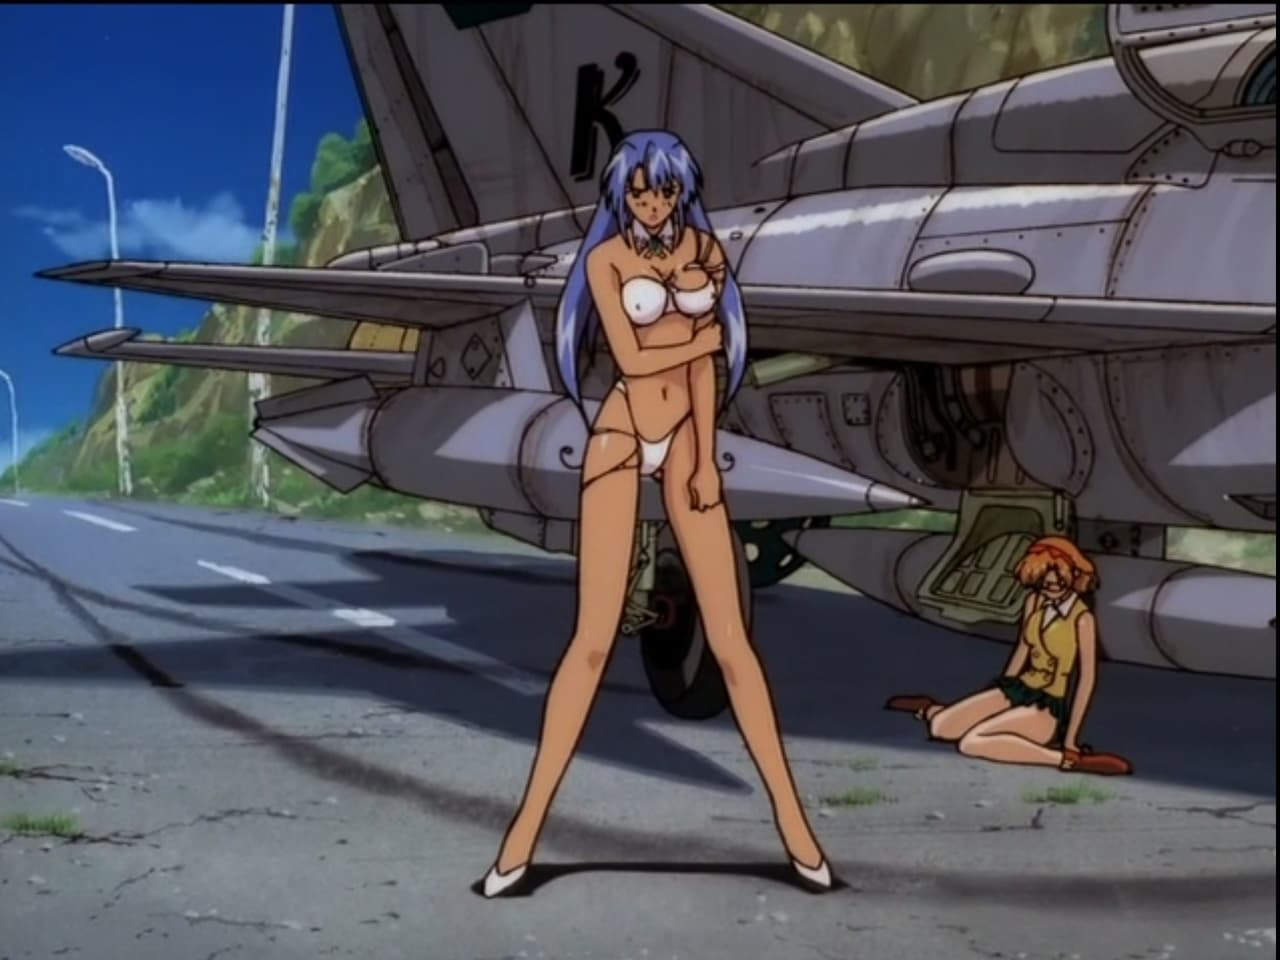 Agent Aika Episode: Trial 2 Naked Mission